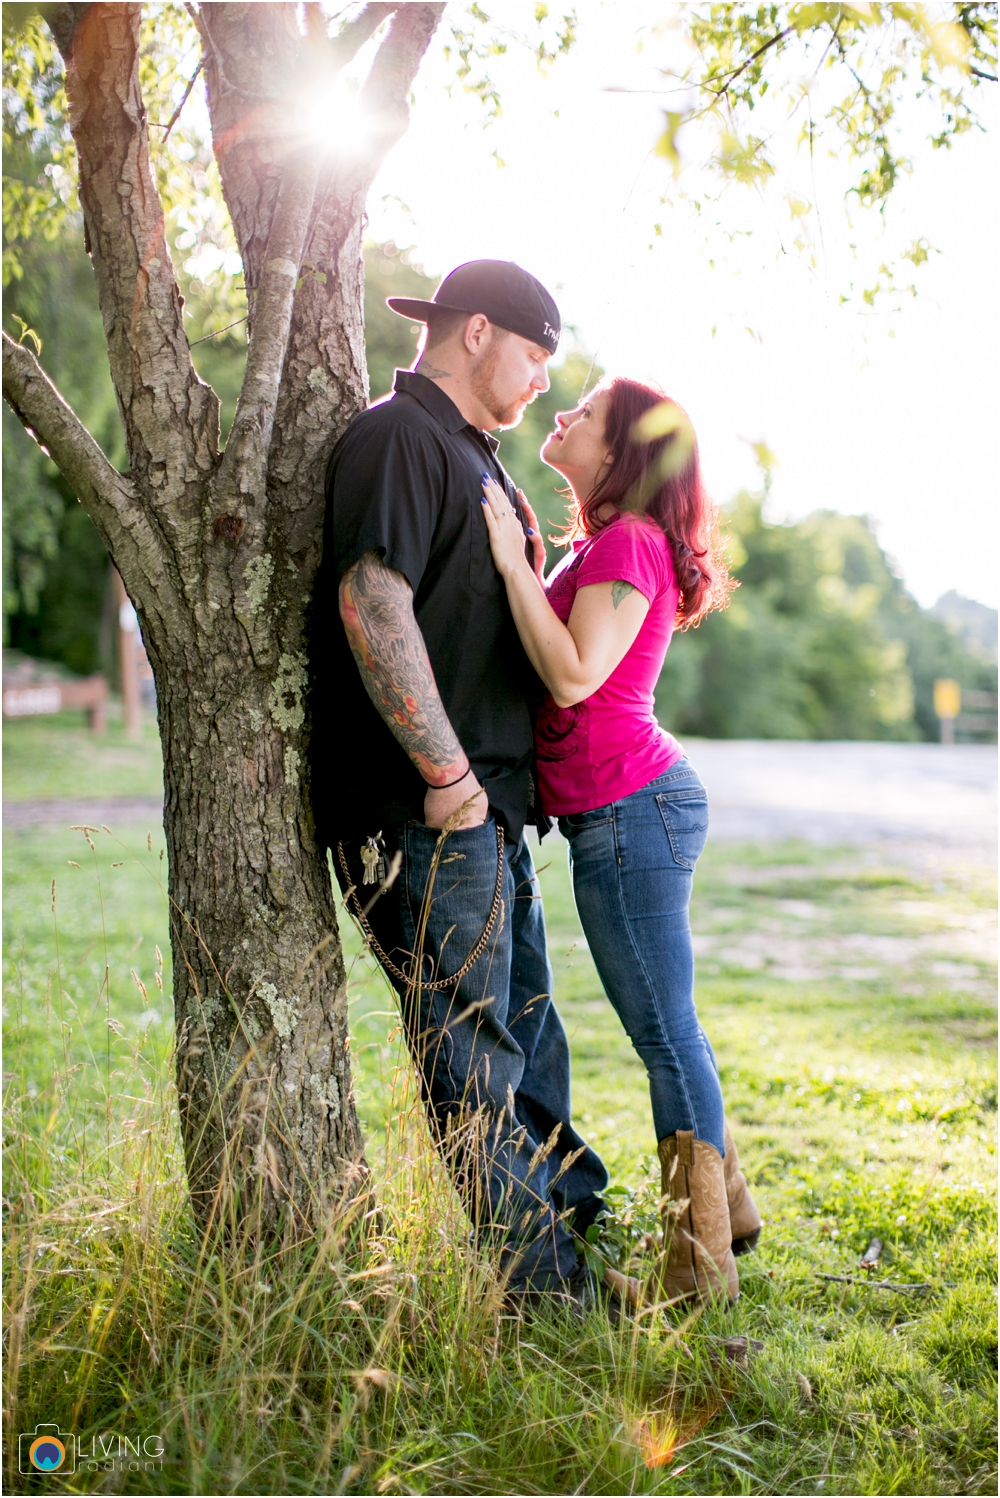 crystal-mike-engagement-session-ellicott-city-maryland-living-radiant-photography_0051.jpg